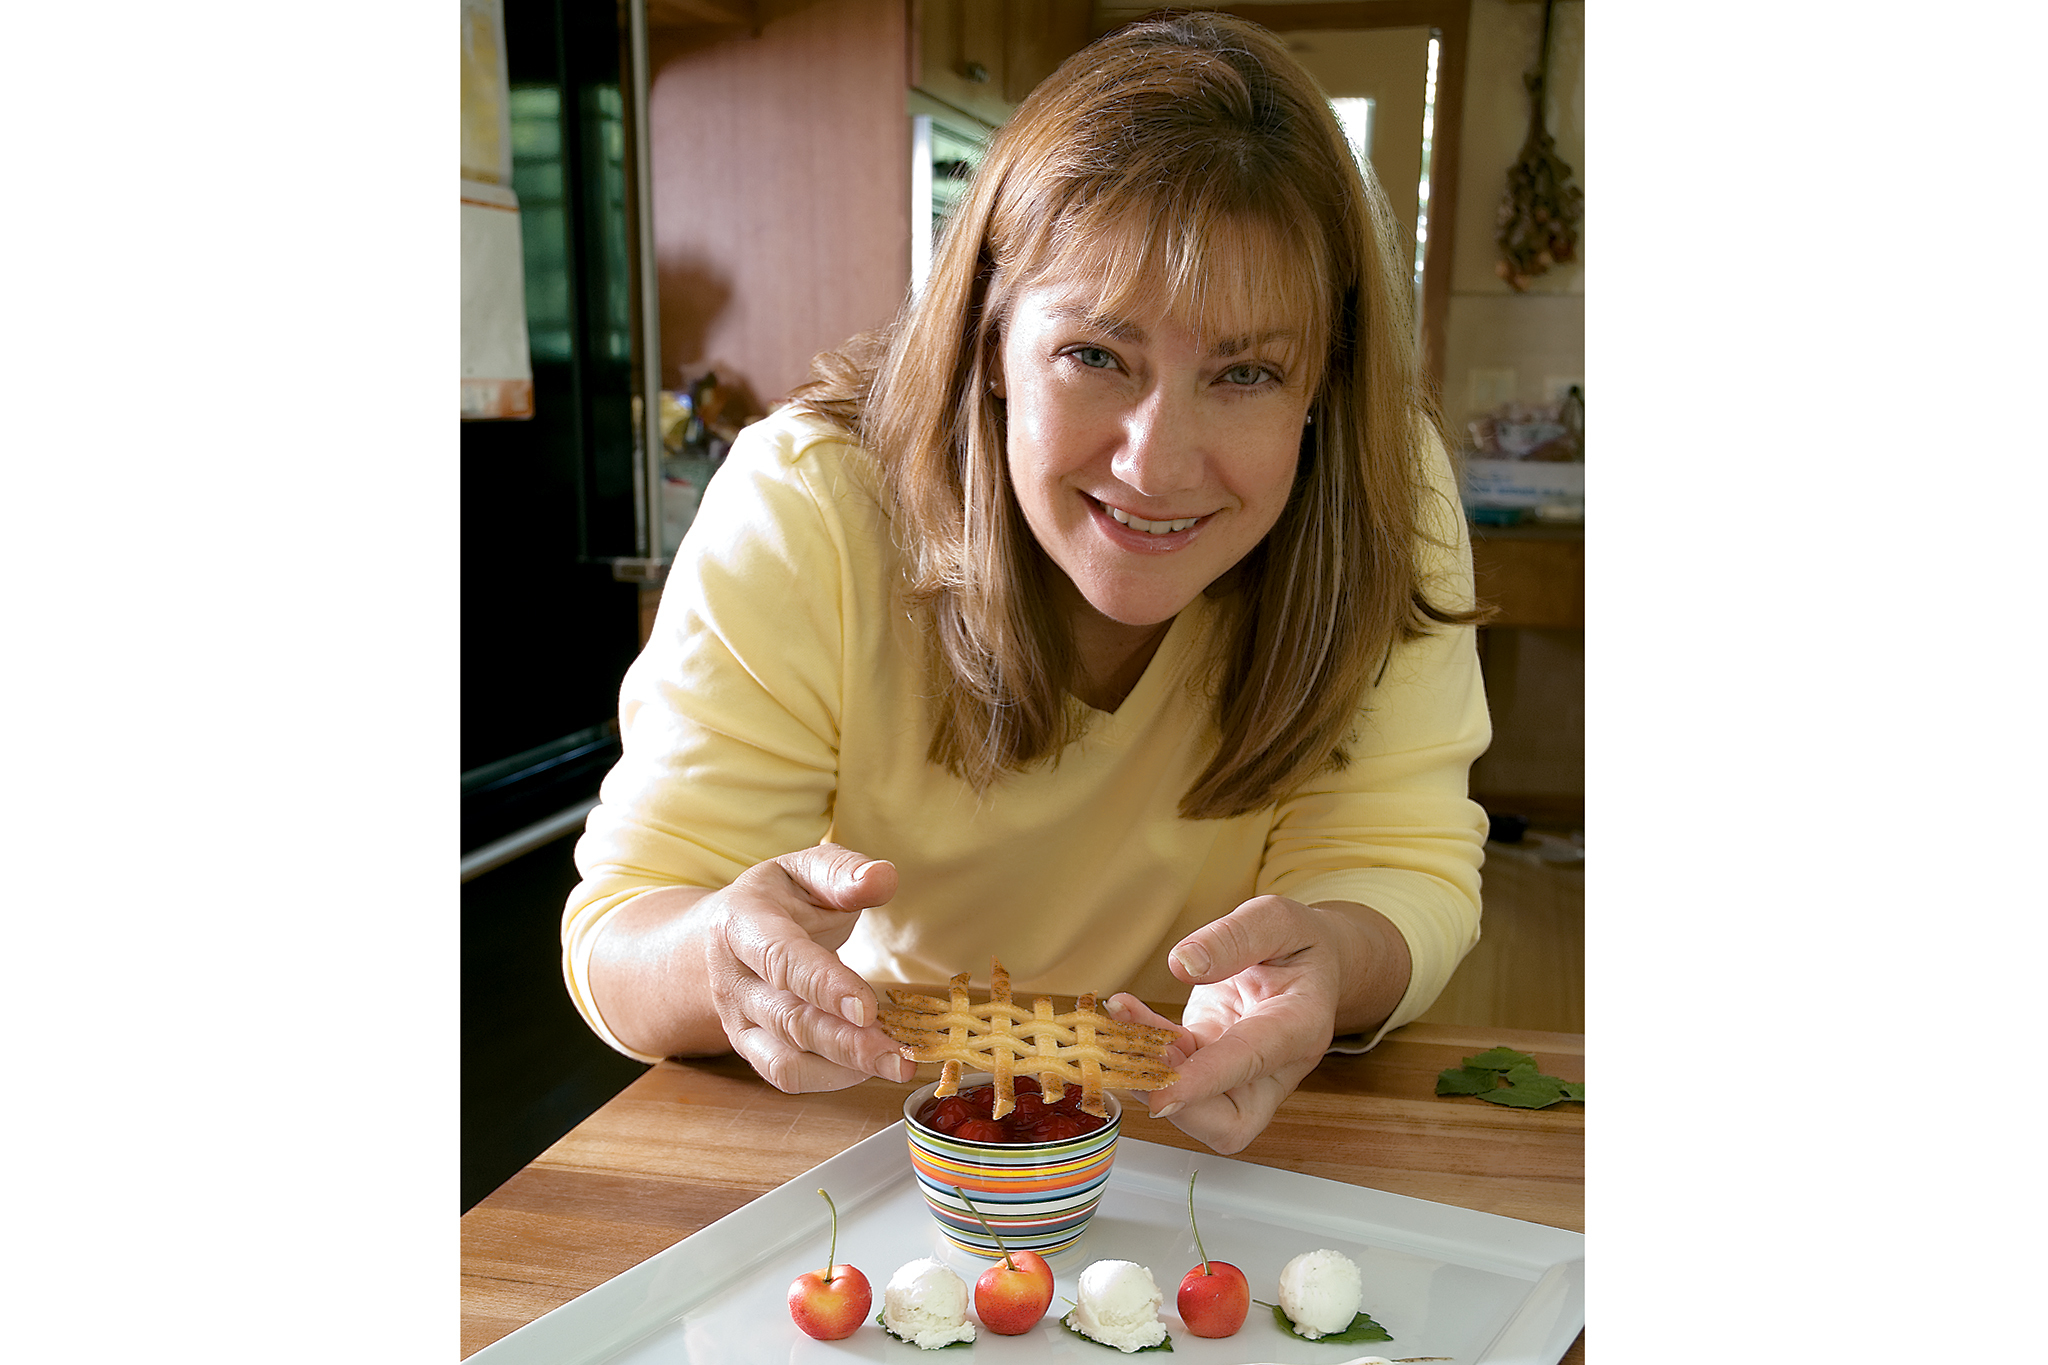 Gale Gand gives us baking tips on July 7, 2006.